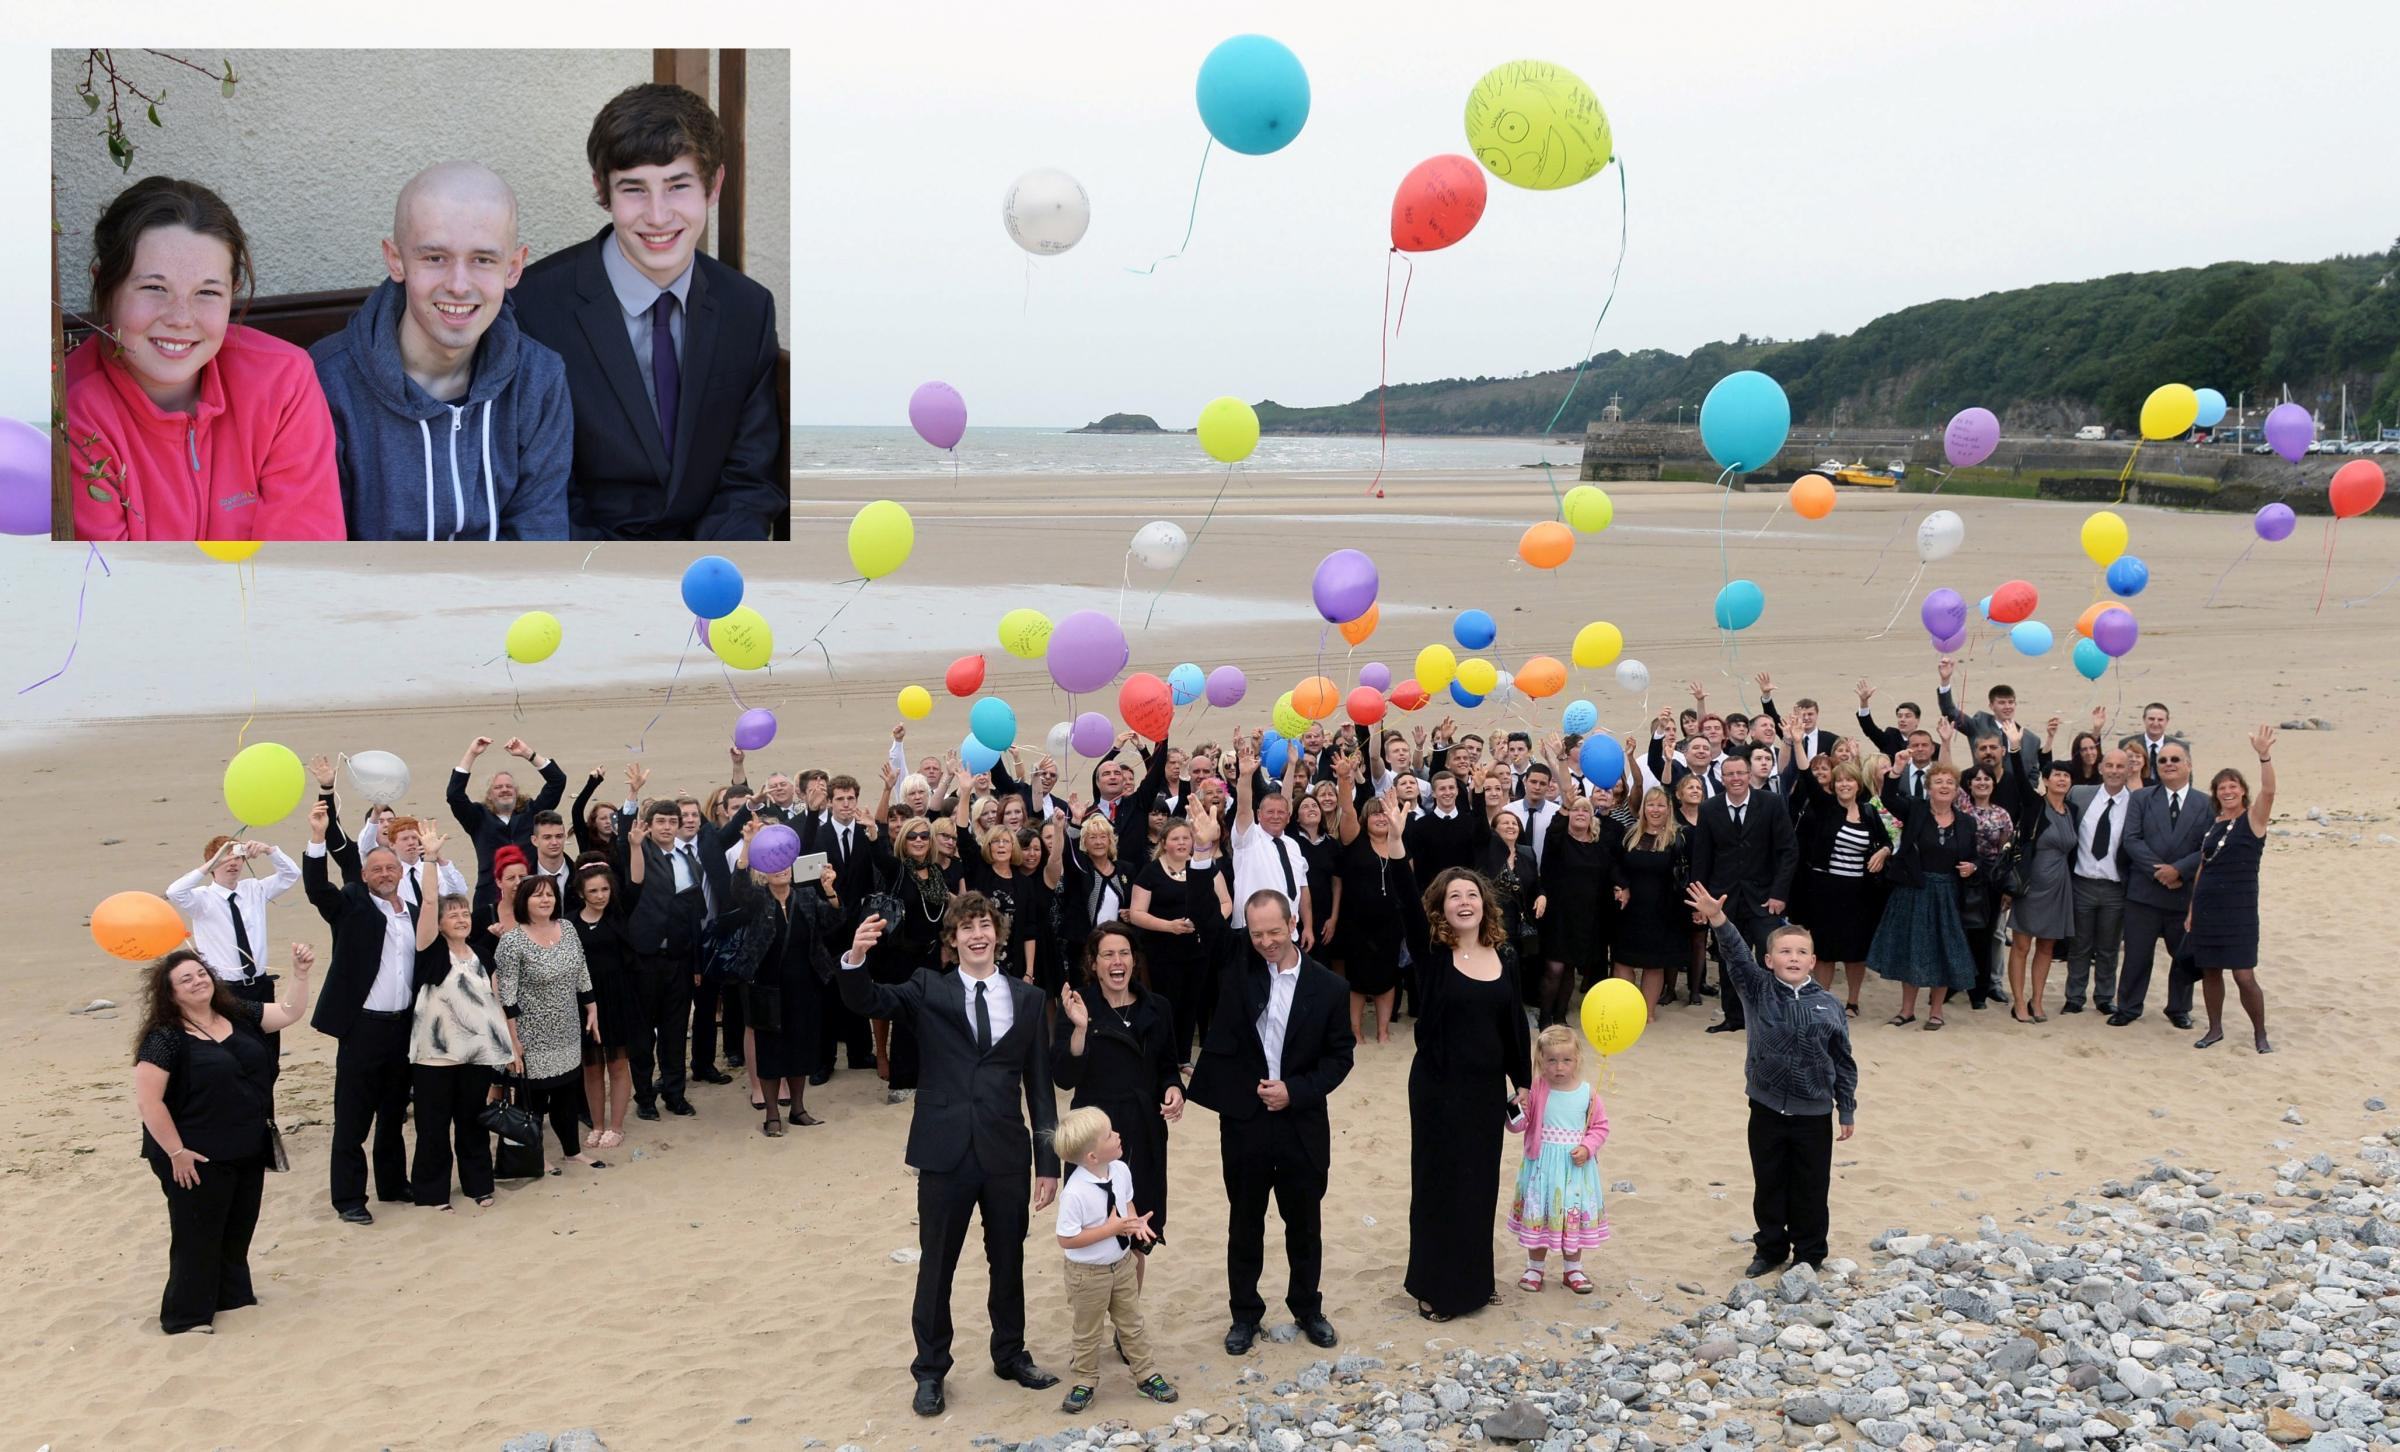 UPLIFTING: Daniel's yellow cartoon balloon (top right) smiles down at his family and friends as they celebrate his life. Daniel is pictured inset  flanked by his sister Nicole and brother Lewis. MAIN PICTU